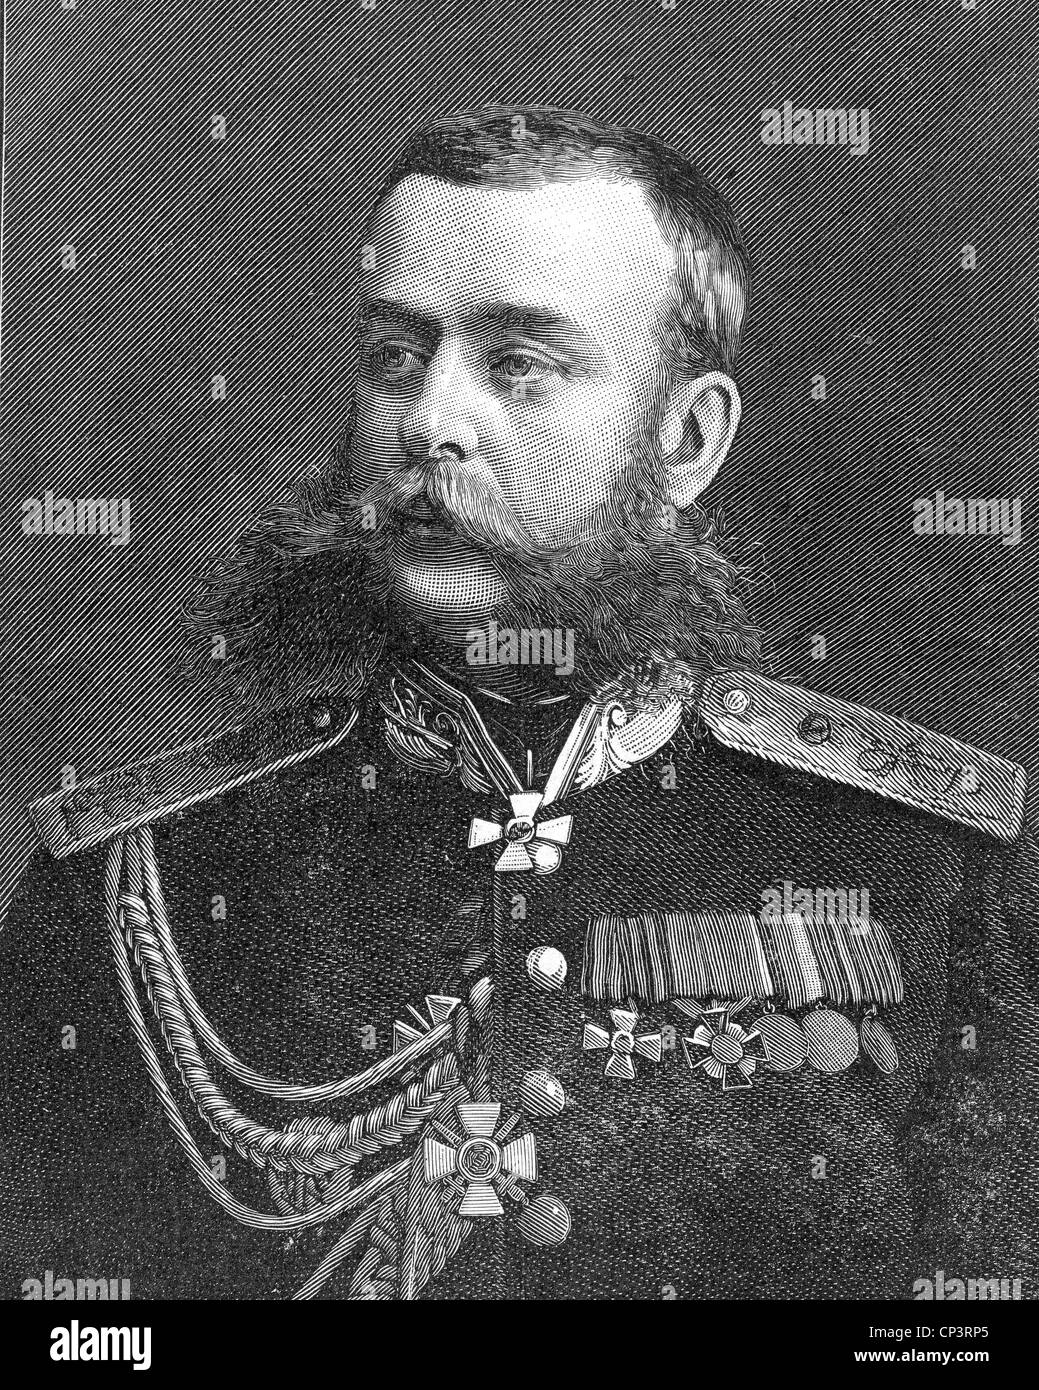 MIKHAIL SKOBELEV (1843-1882) Russian general - Stock Image